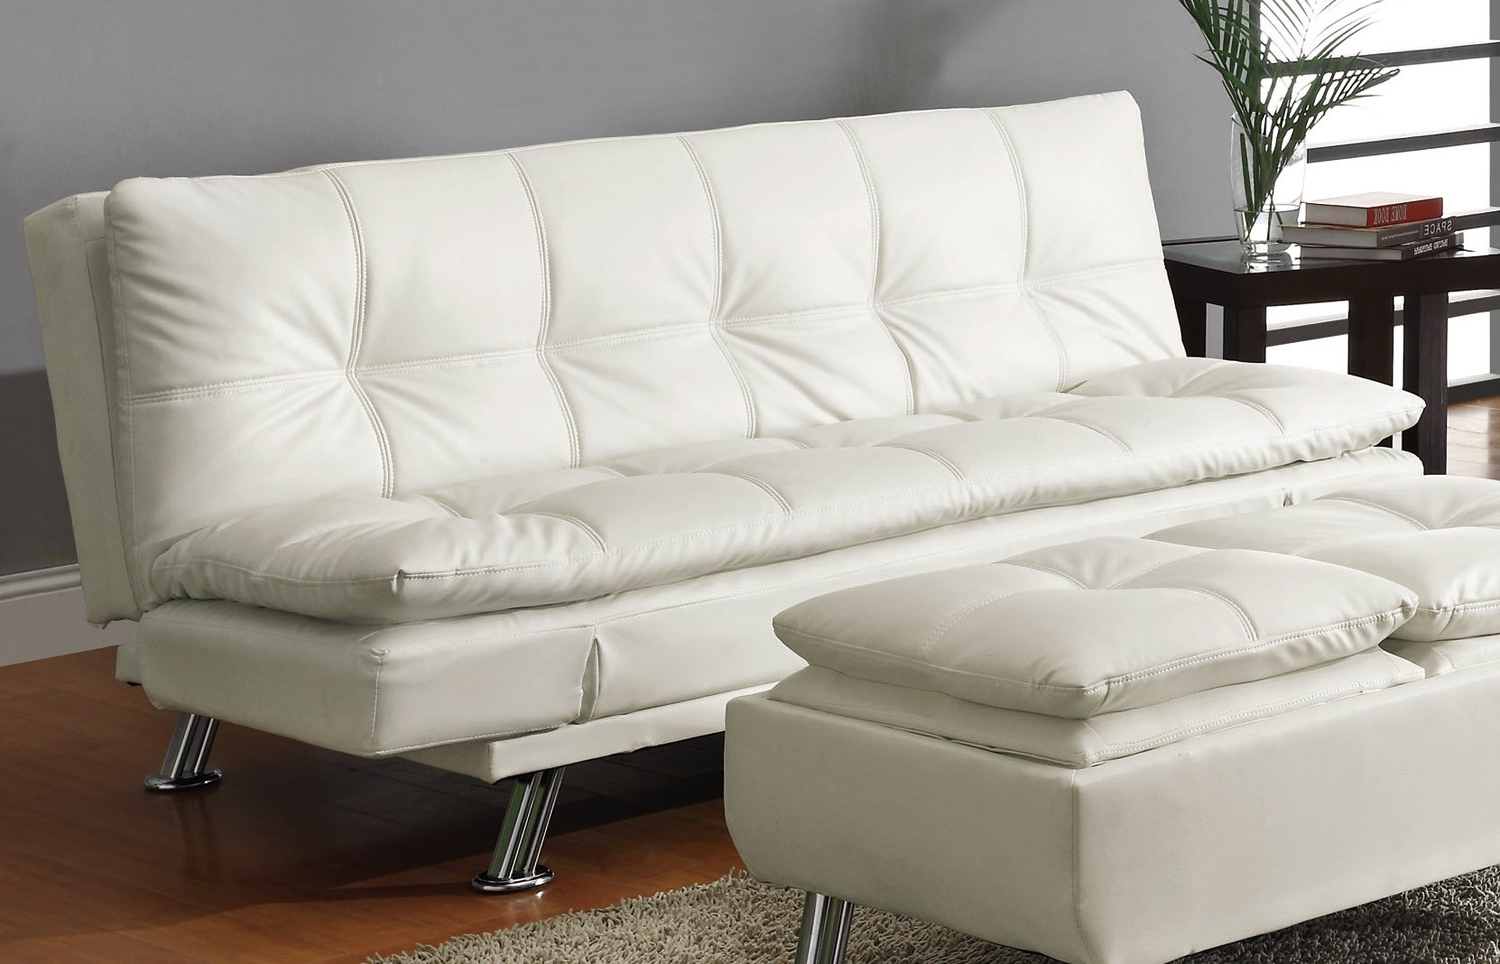 Comfortable Sofas And Chairs Within Most Up To Date Most Comfortable Sleeper Sofa 2015 Lazy Boy Sleeper Sofa La Z Boy (View 5 of 15)